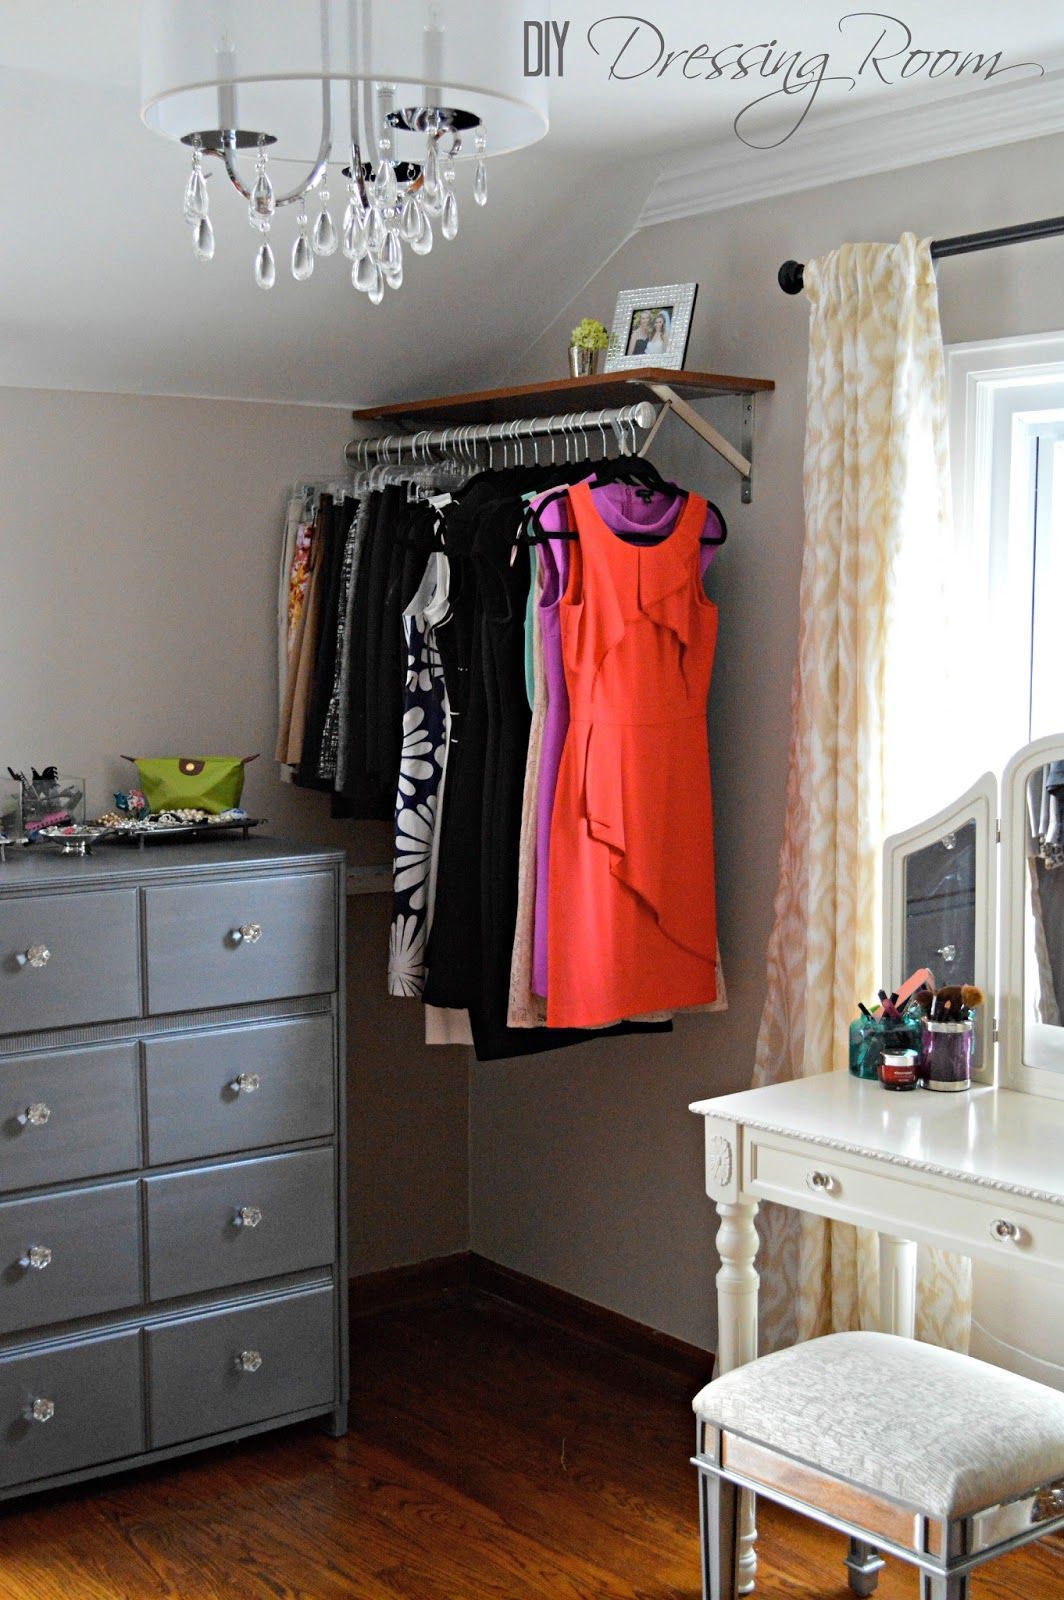 10 Storage Ideas For Bedrooms Without Closets Most Of The Awesome And Beautiful Bedroom Storage For Small Rooms Bedroom Storage Ideas For Clothes Clothes Storage Without A Closet